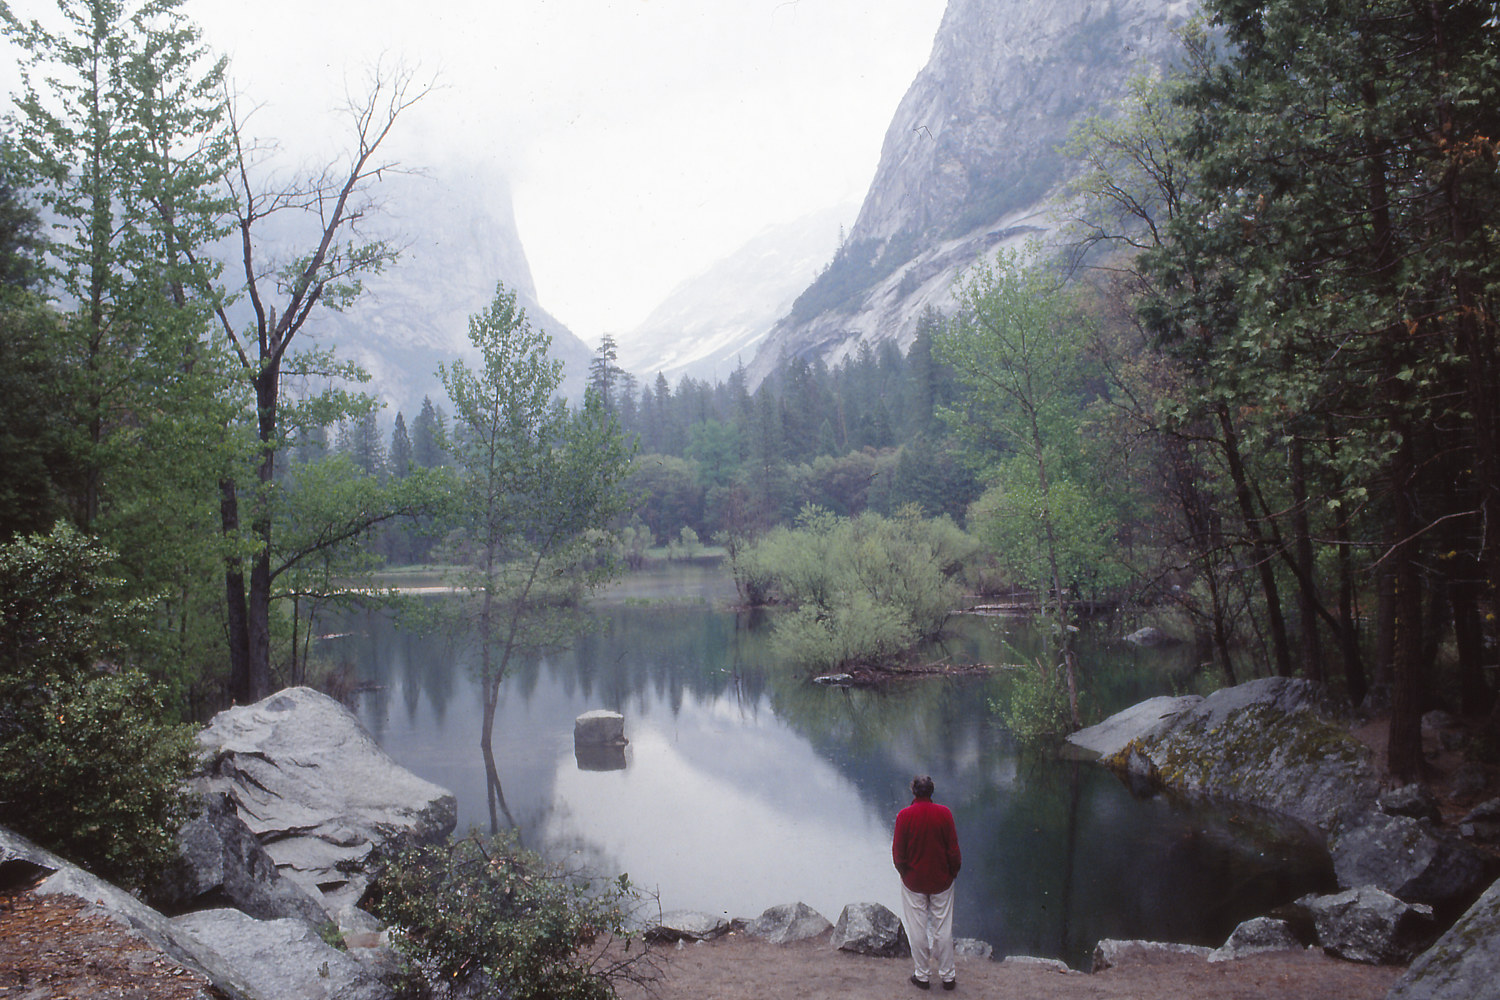 Lake at Yosemite by Kathleen Gross